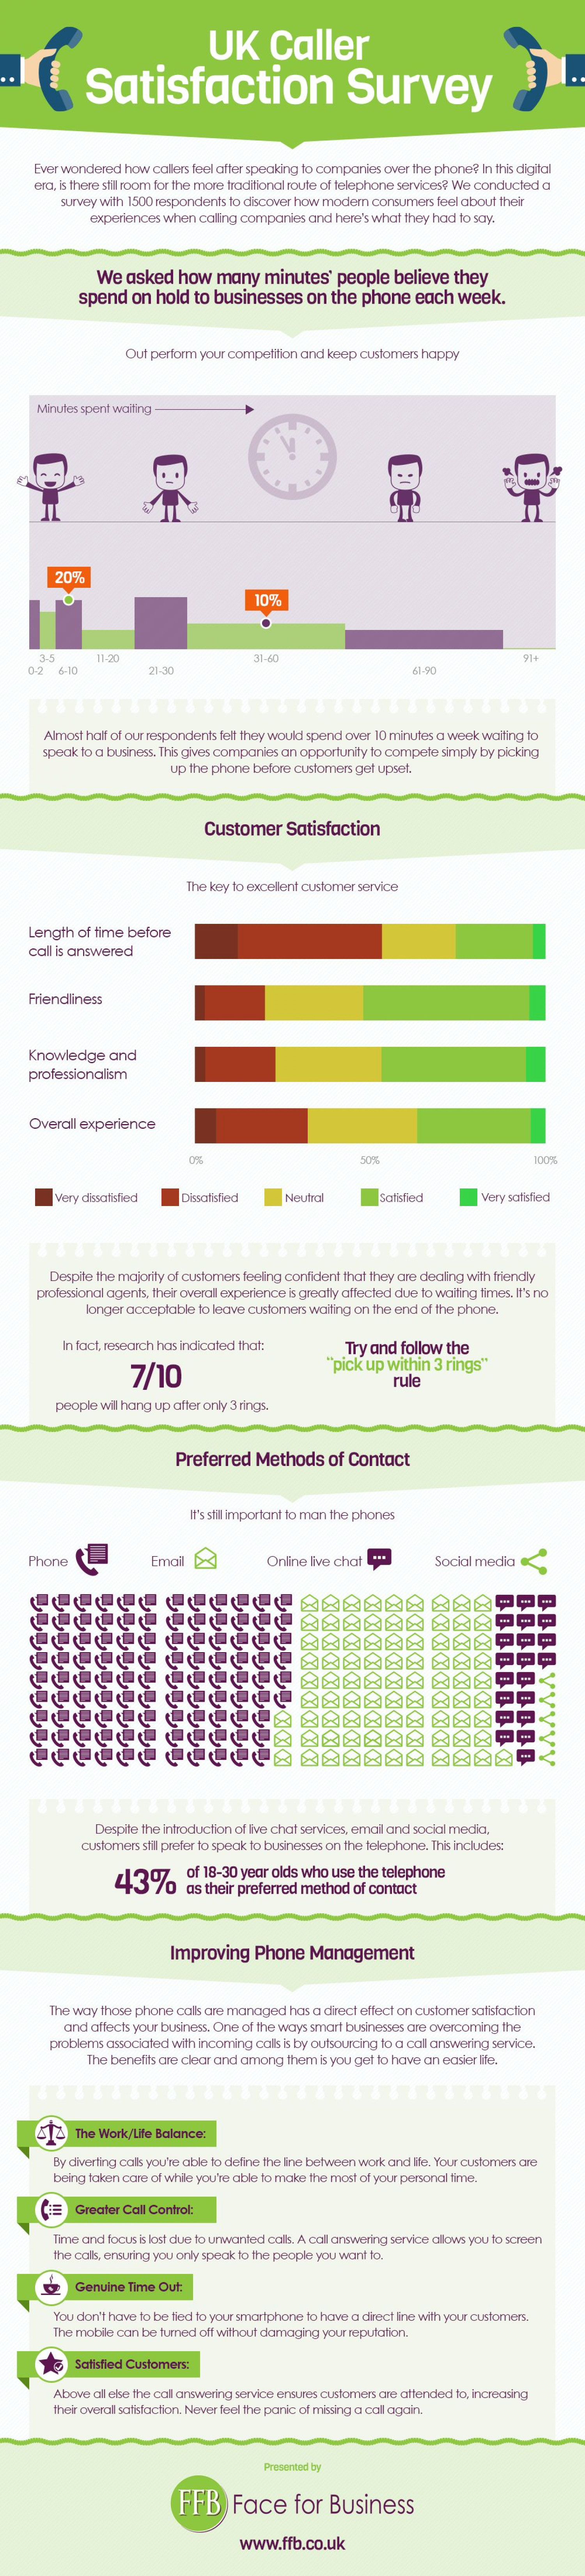 UK Caller Satisfaction Survey Infographic